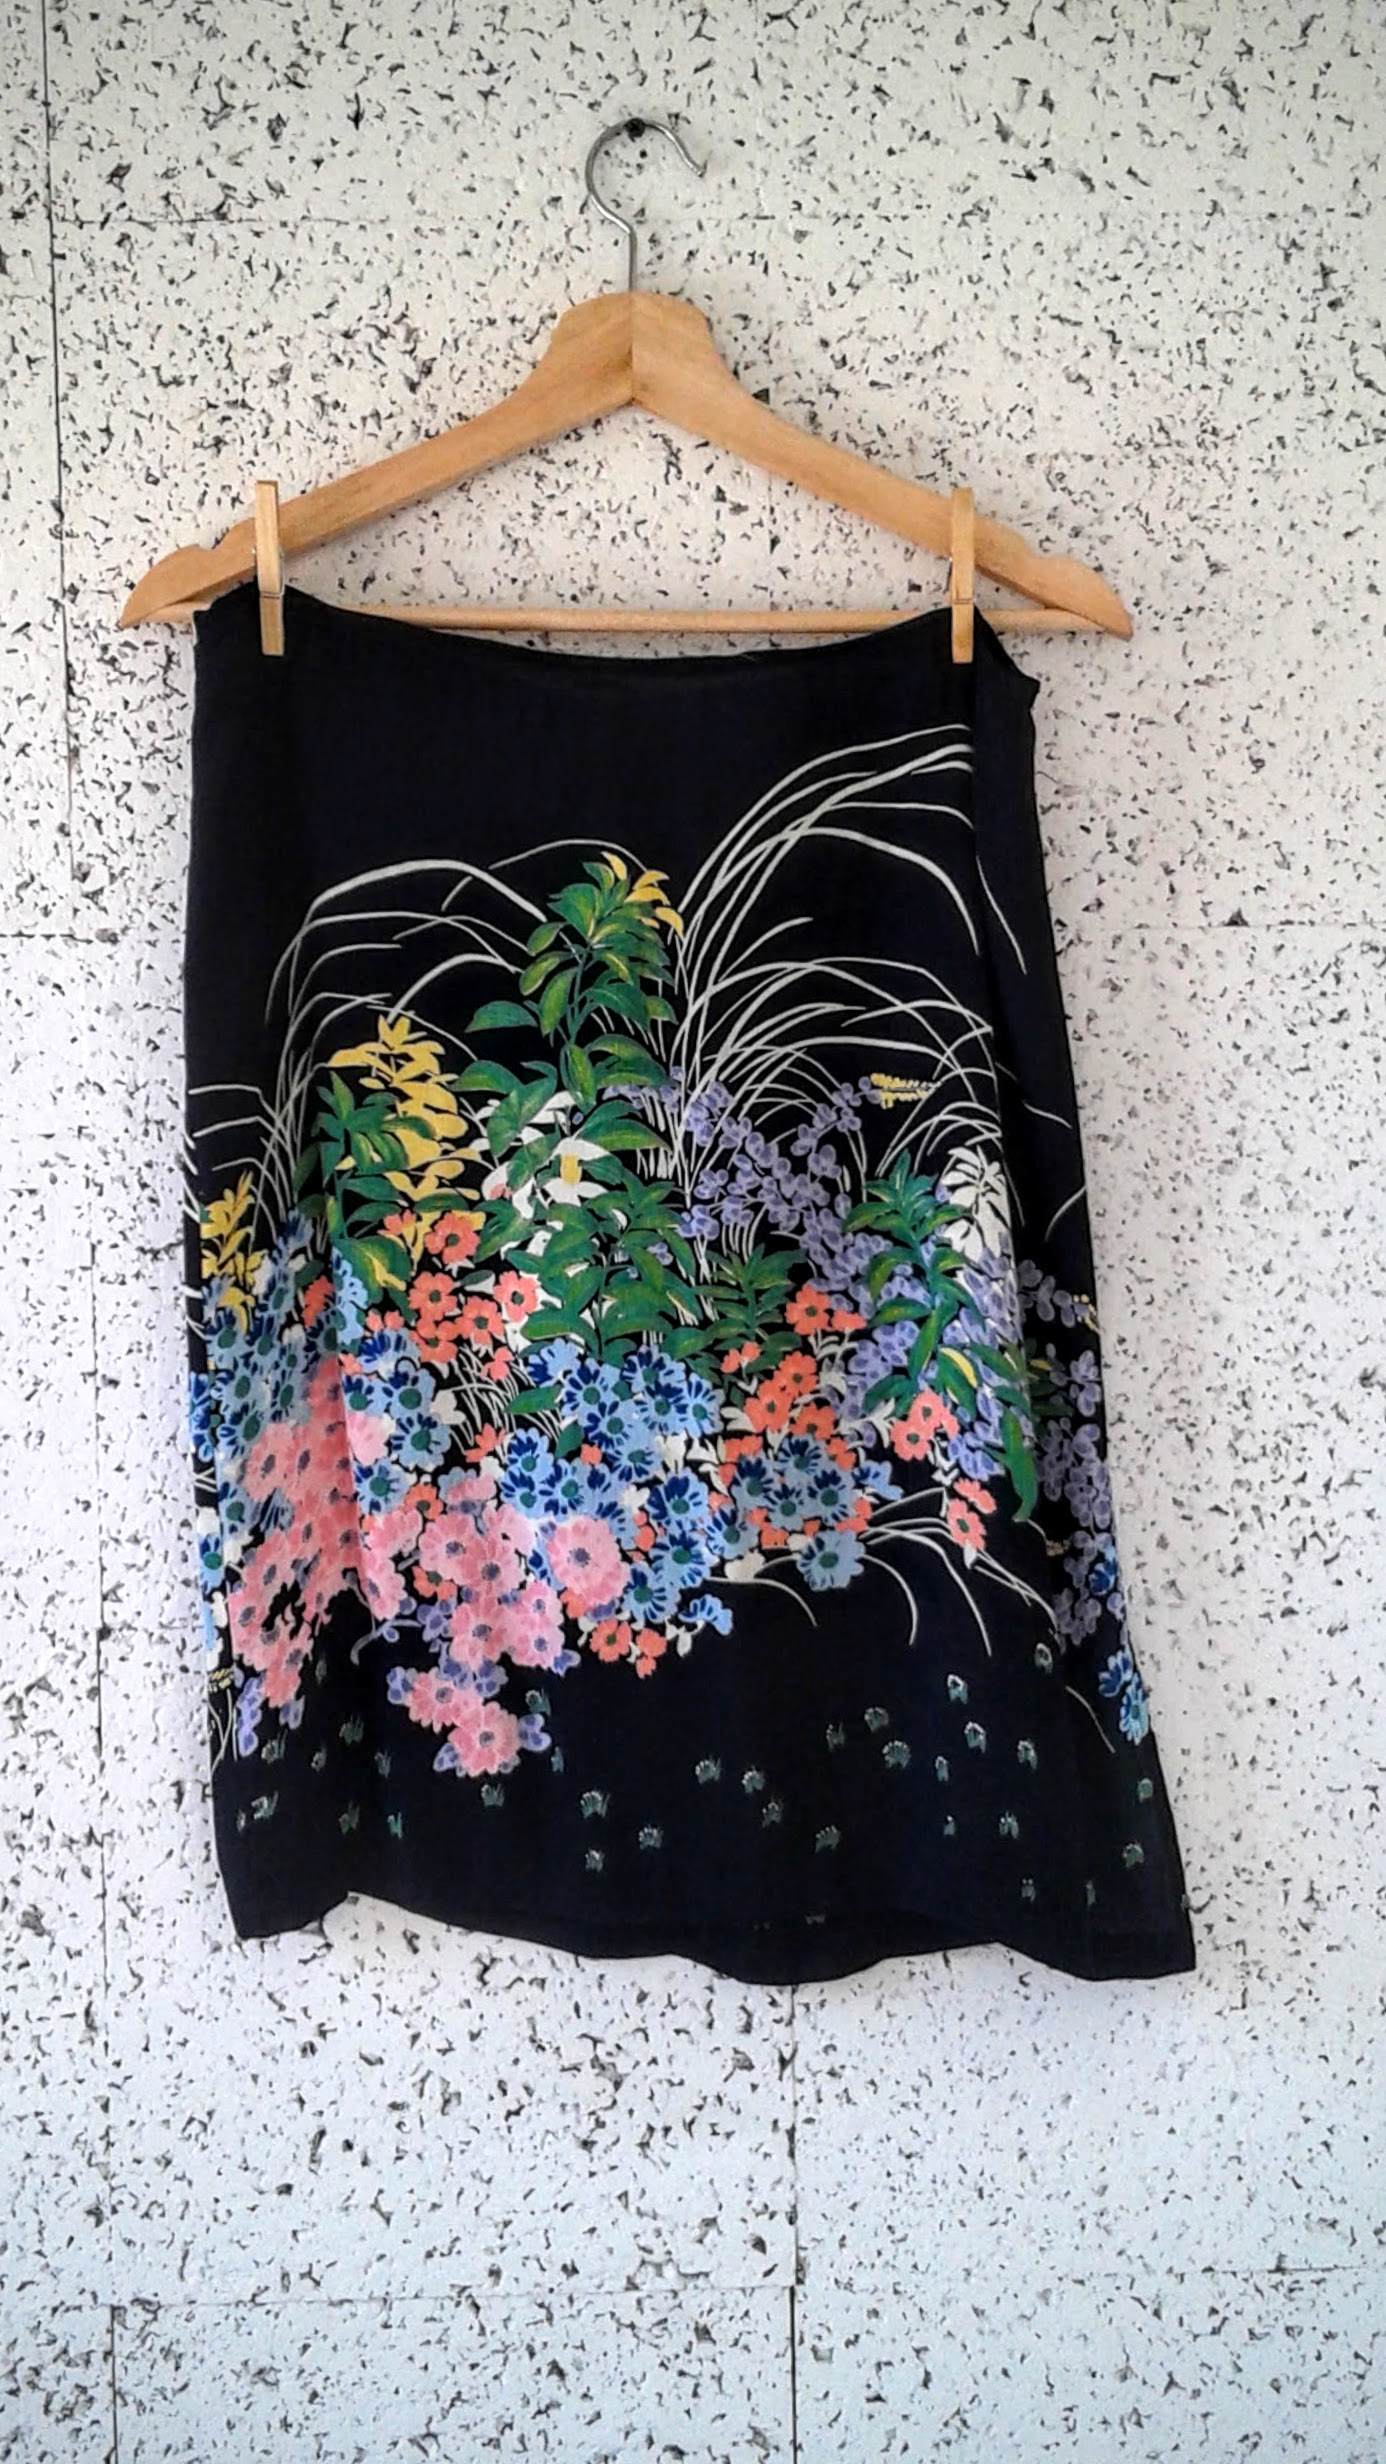 French Connection skirt; Size 8, $28